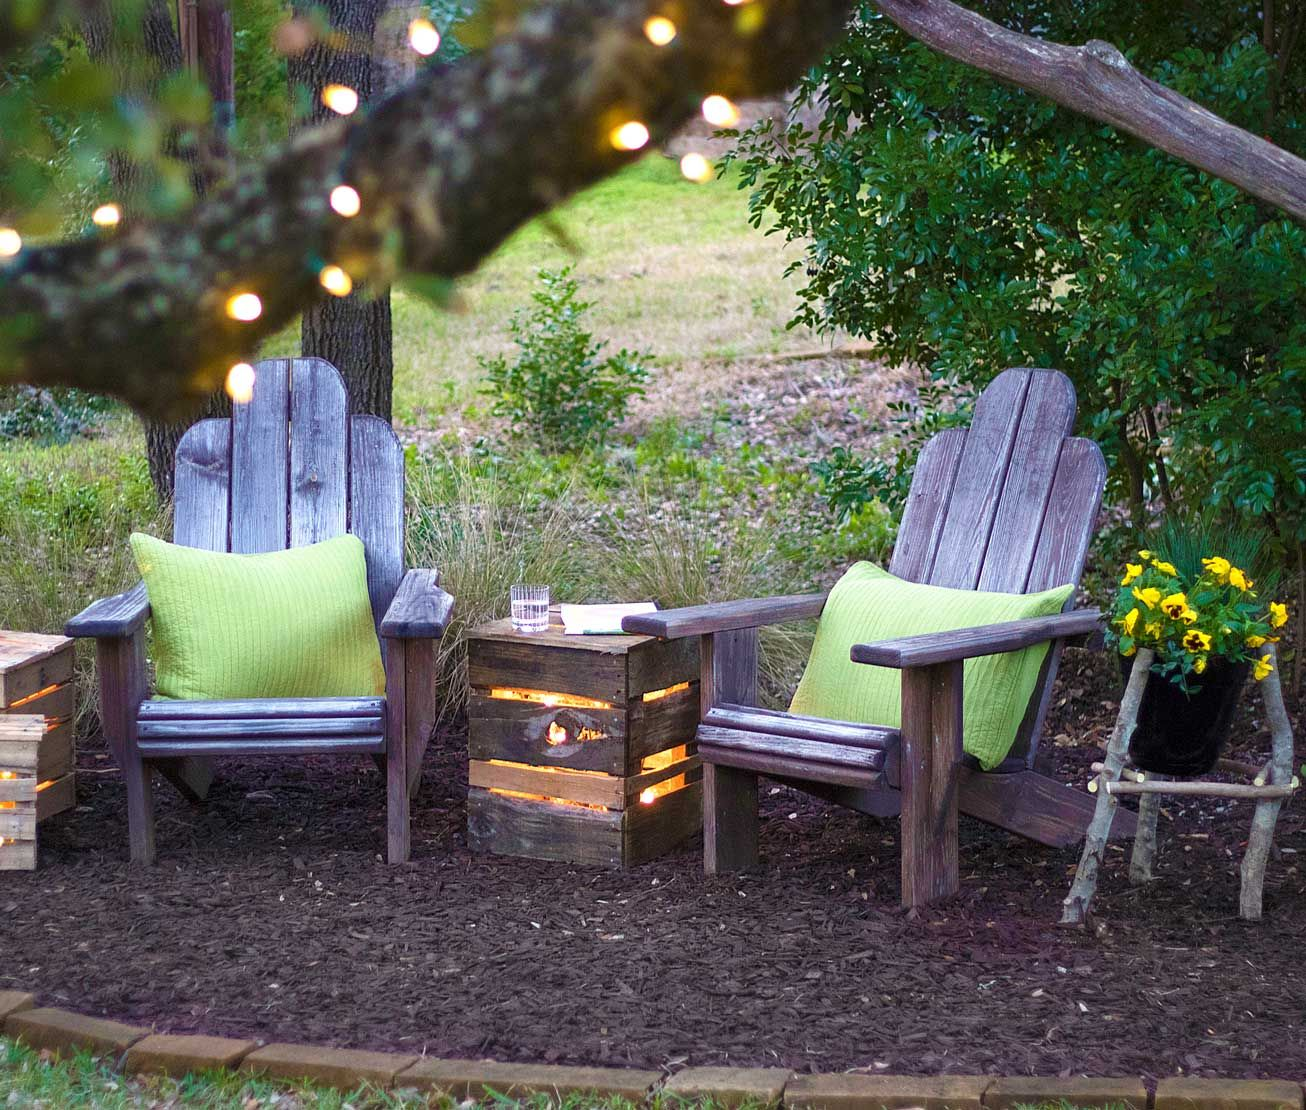 Transform your backyard into a relaxing retreat with Fiskars. These DIY backyard  oasis ideas will help inspire your creation! - Transform Your Backyard Into The Oasis Of Your Dreams With These 5 Steps